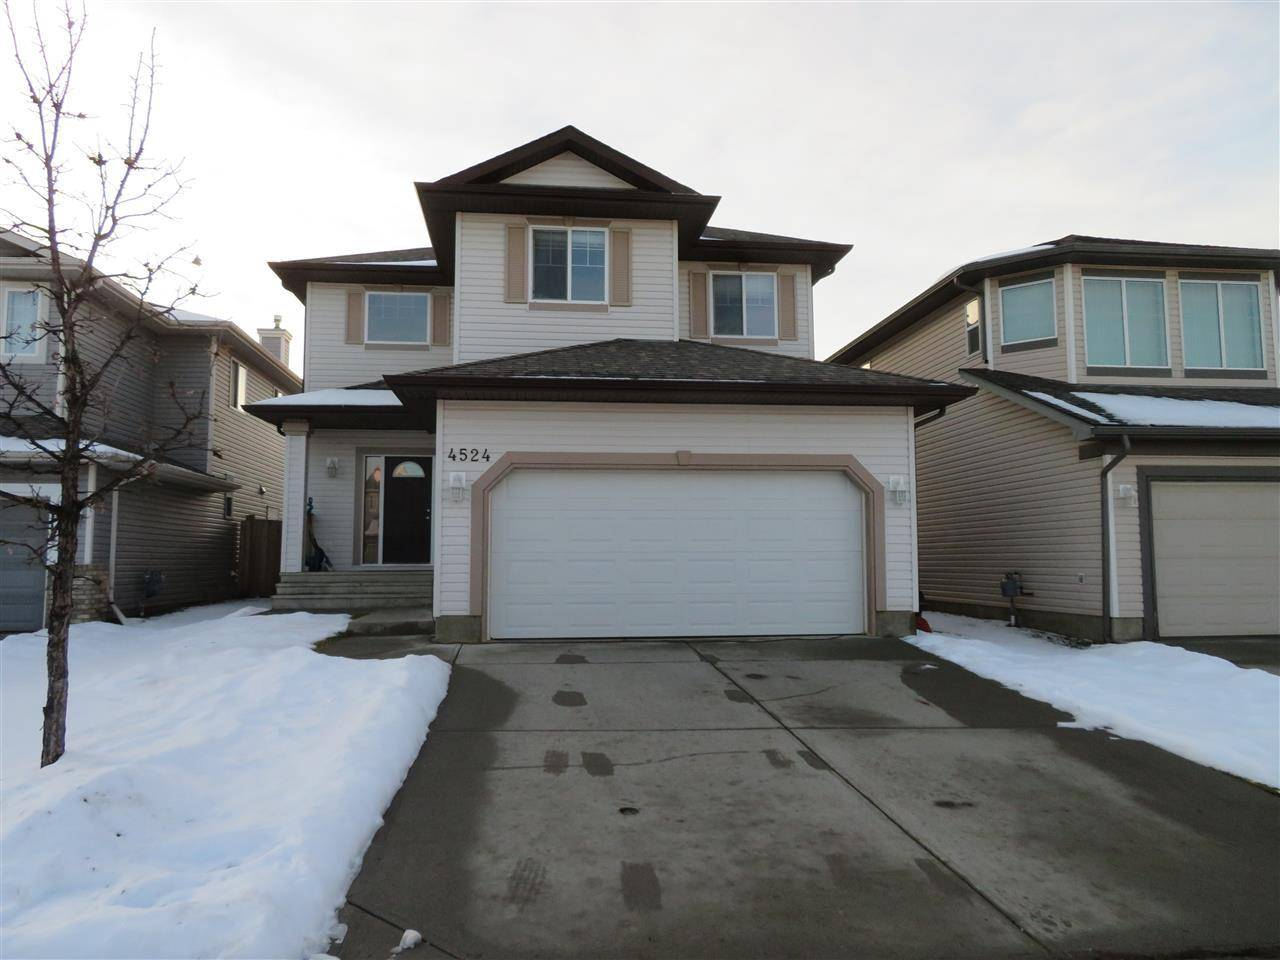 House for sale at 4524 212 St Nw Edmonton Alberta - MLS: E4179711